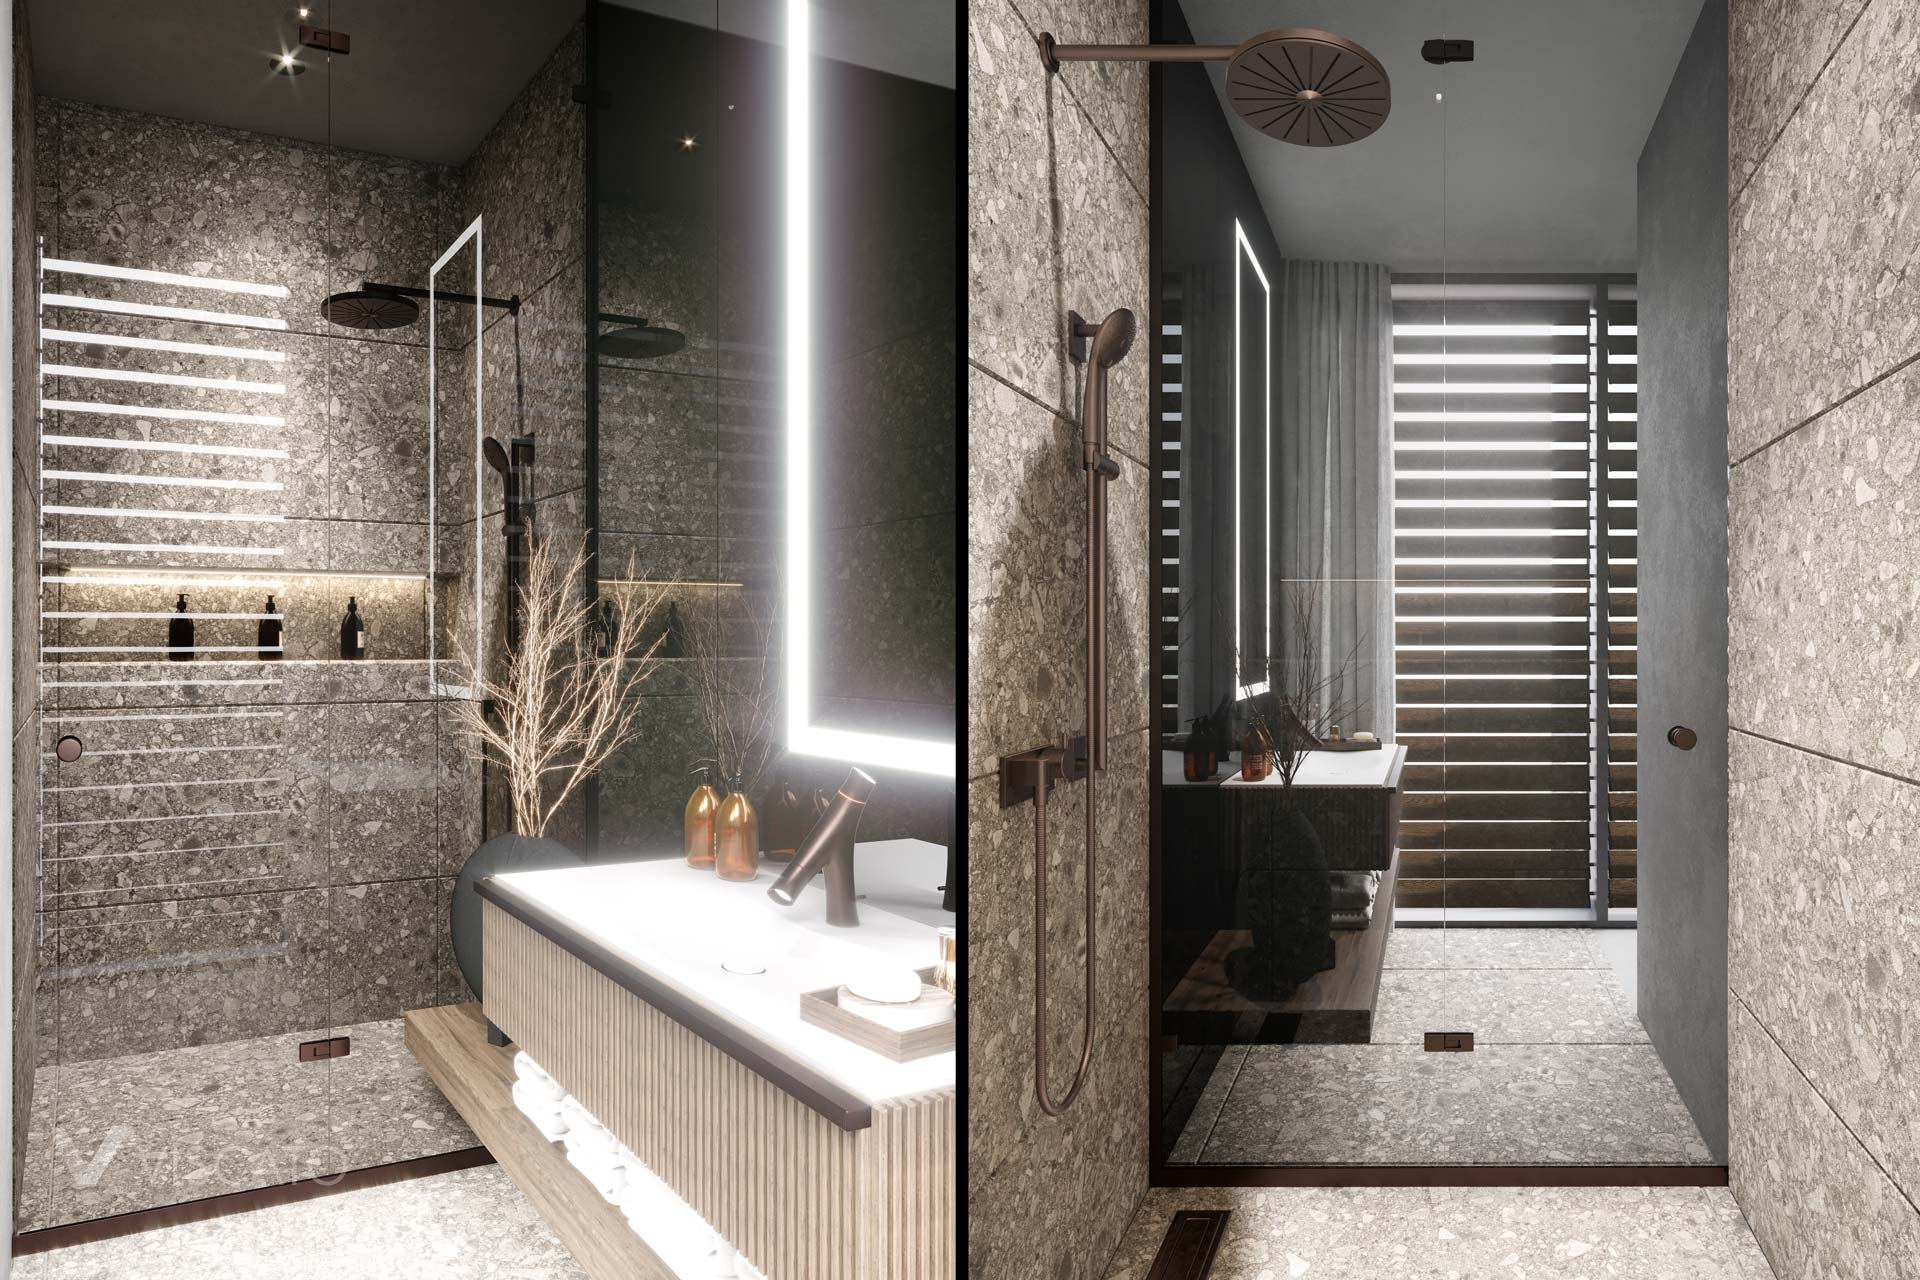 bathroom finished with stone and wood, 3D visualizations